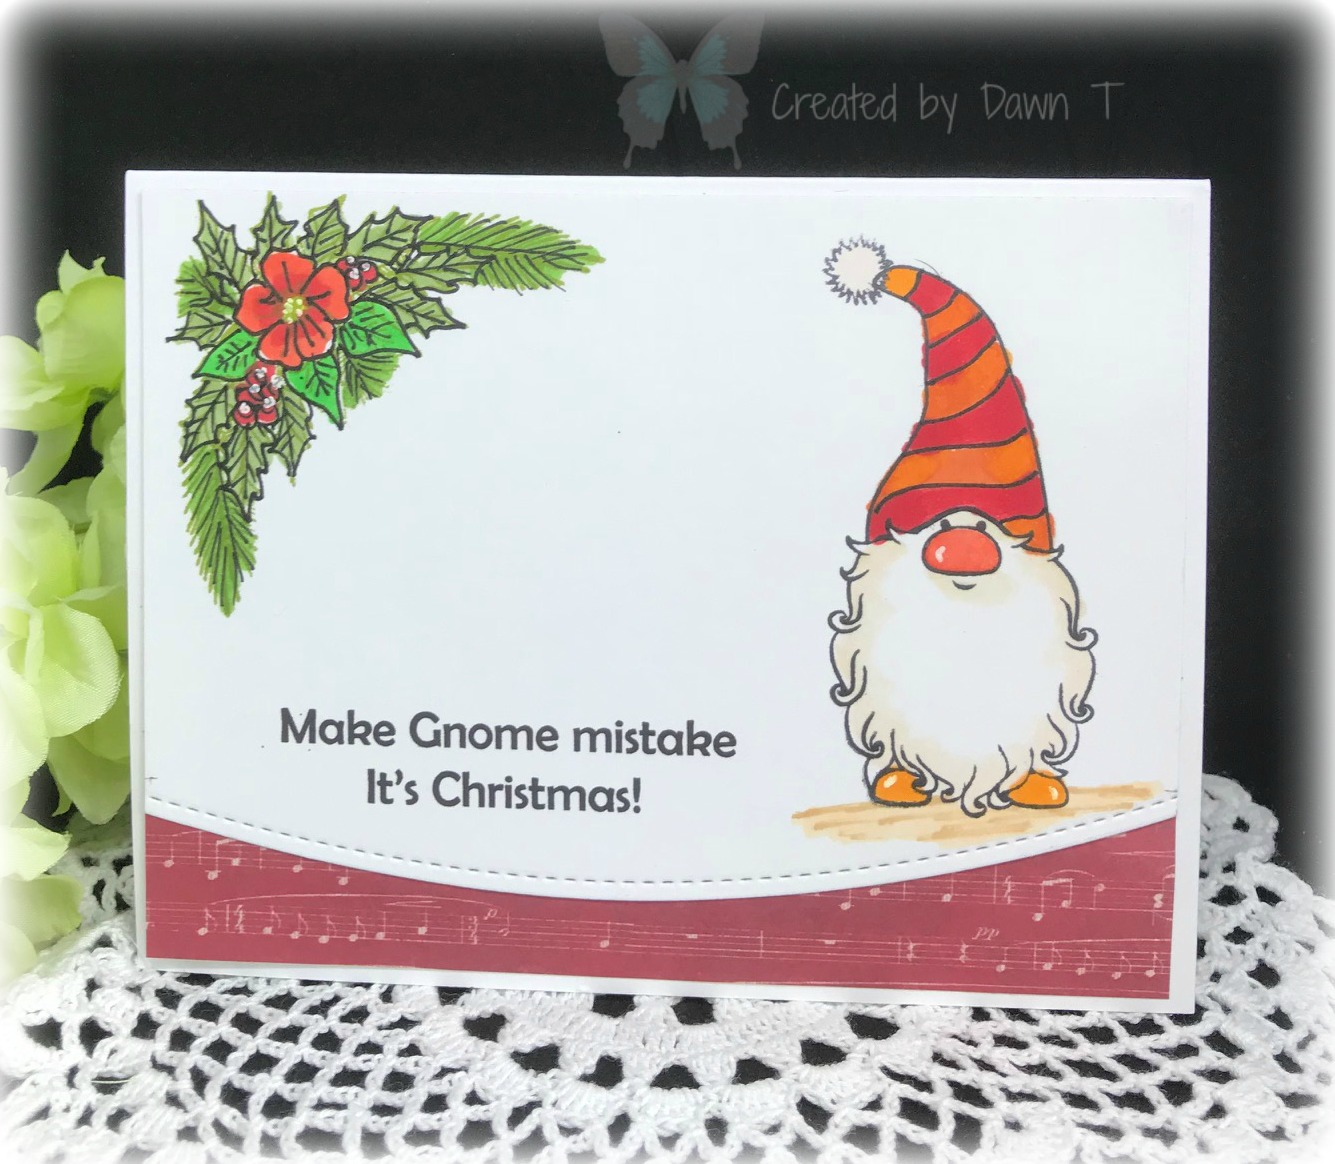 Dawn\'s World: Christmas cards galore!